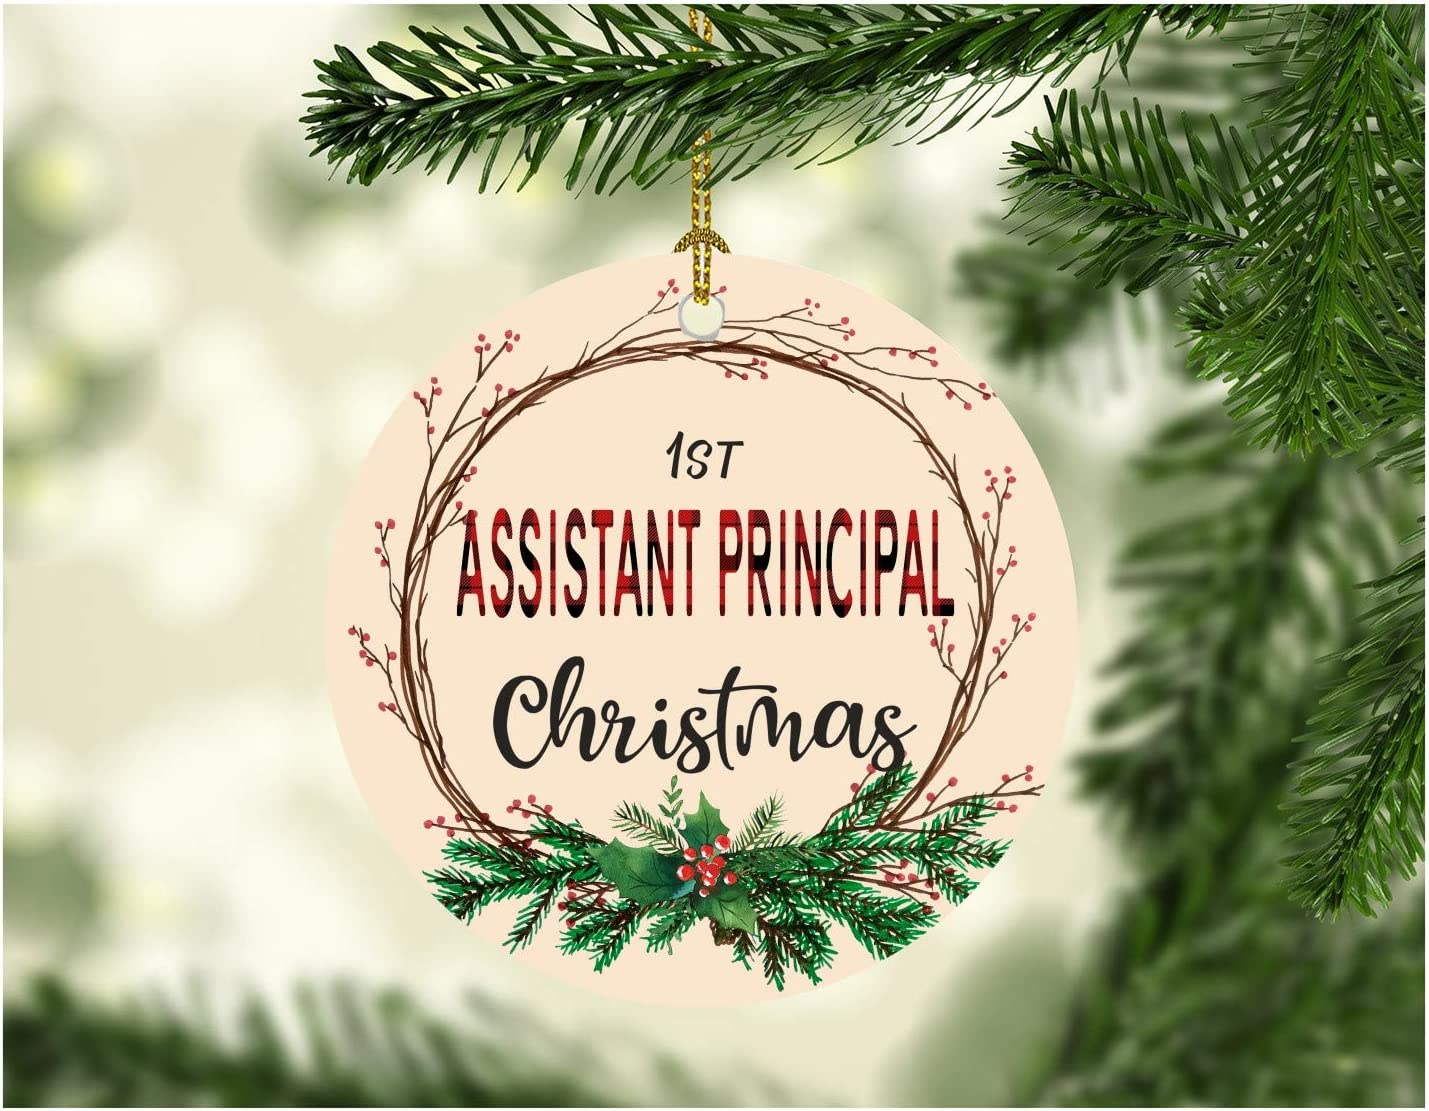 Christmas Tree Ornament 2020 First Christmas Assistant Principal Decorations Tree Congrats On New Job Good Luck Present Ideas Family Decor for A Holiday Party Funny Xmas MDF Plastic 3